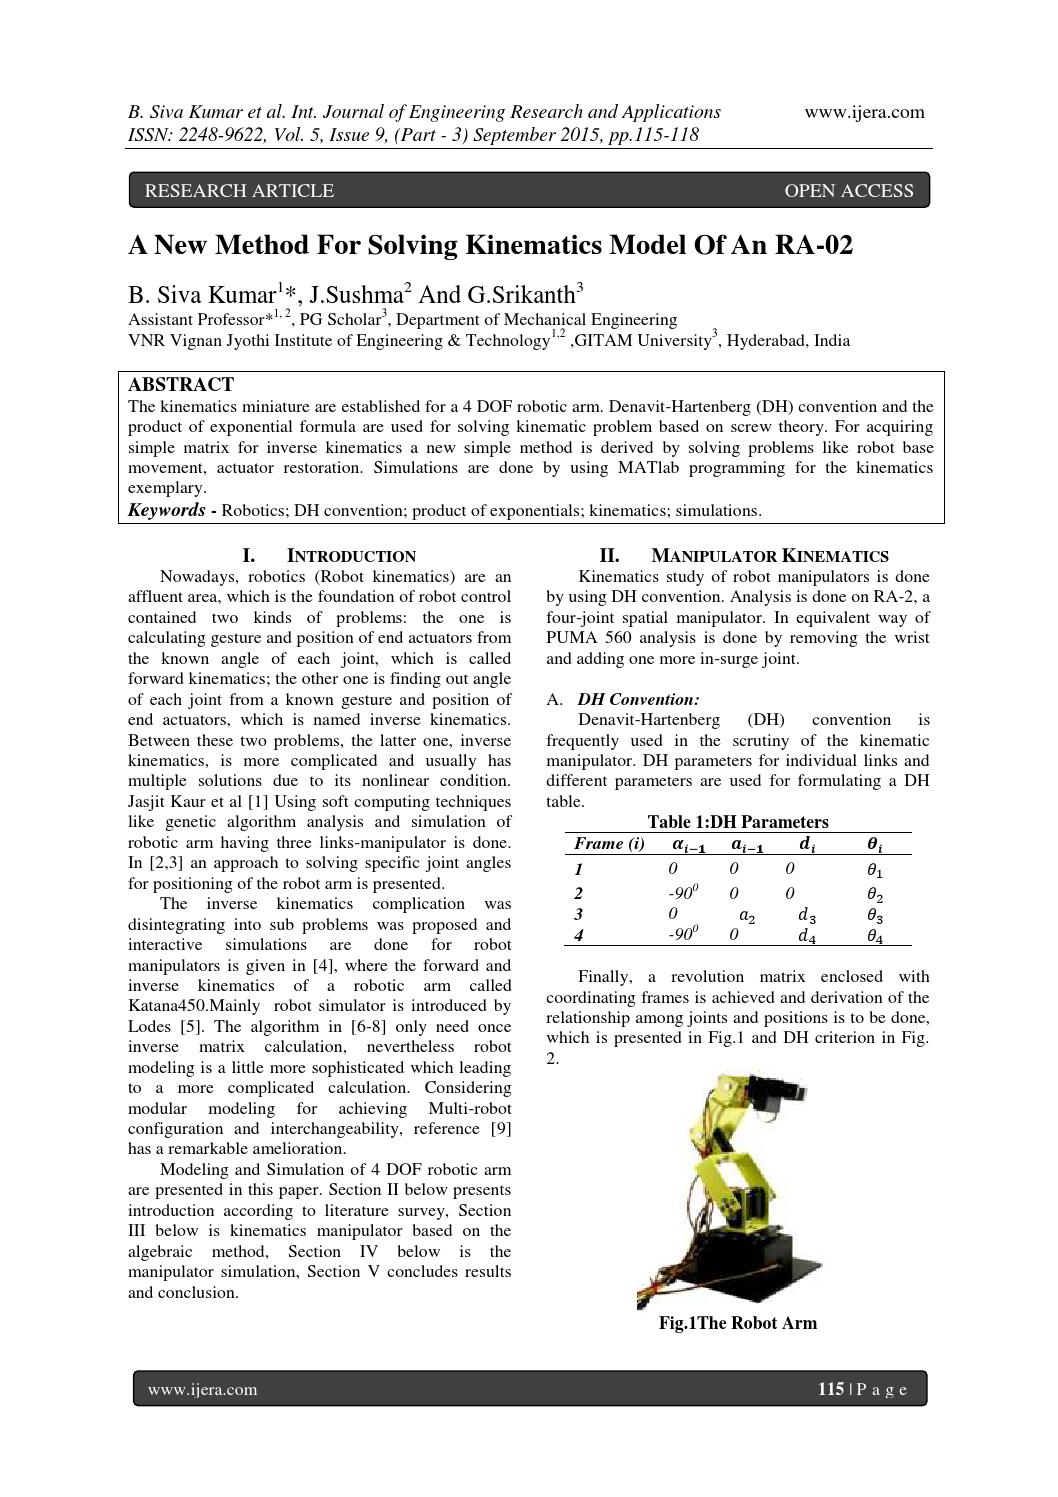 A New Method For Solving Kinematics Model Of An RA-02 by